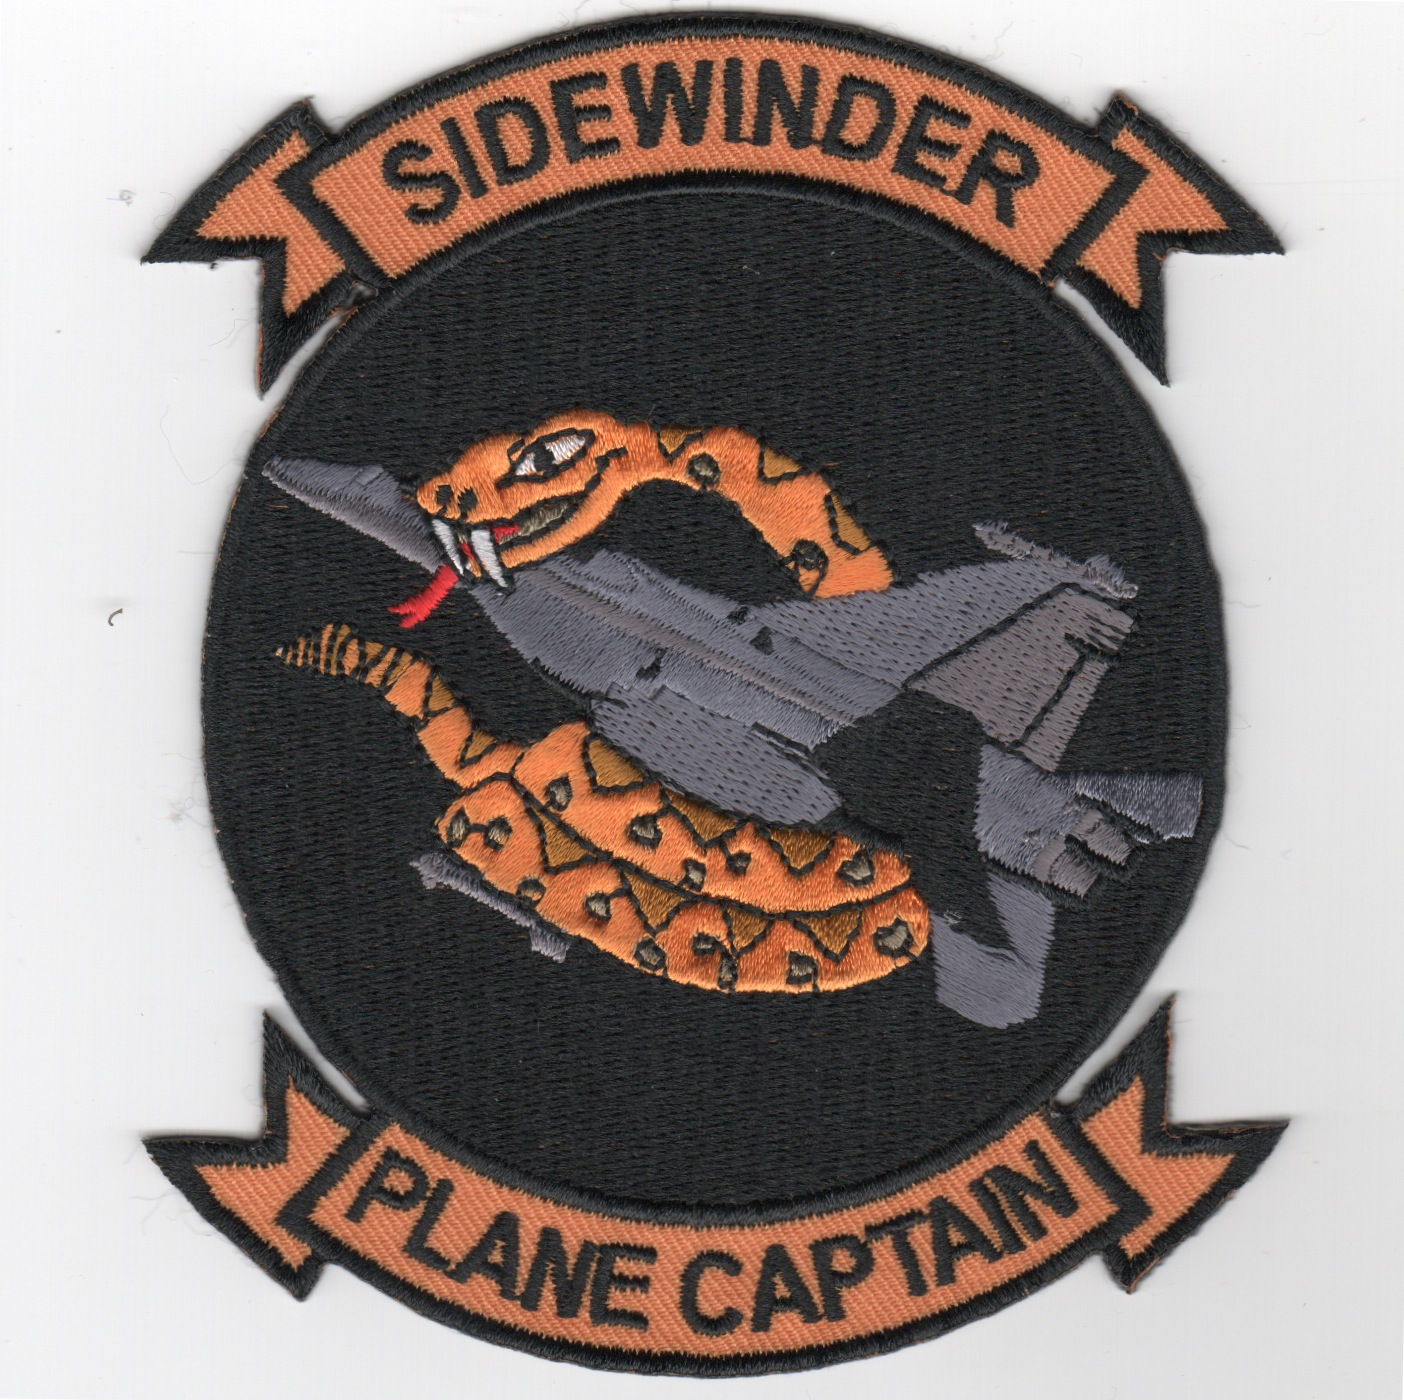 VFA-86 'Plane Captain' Patch